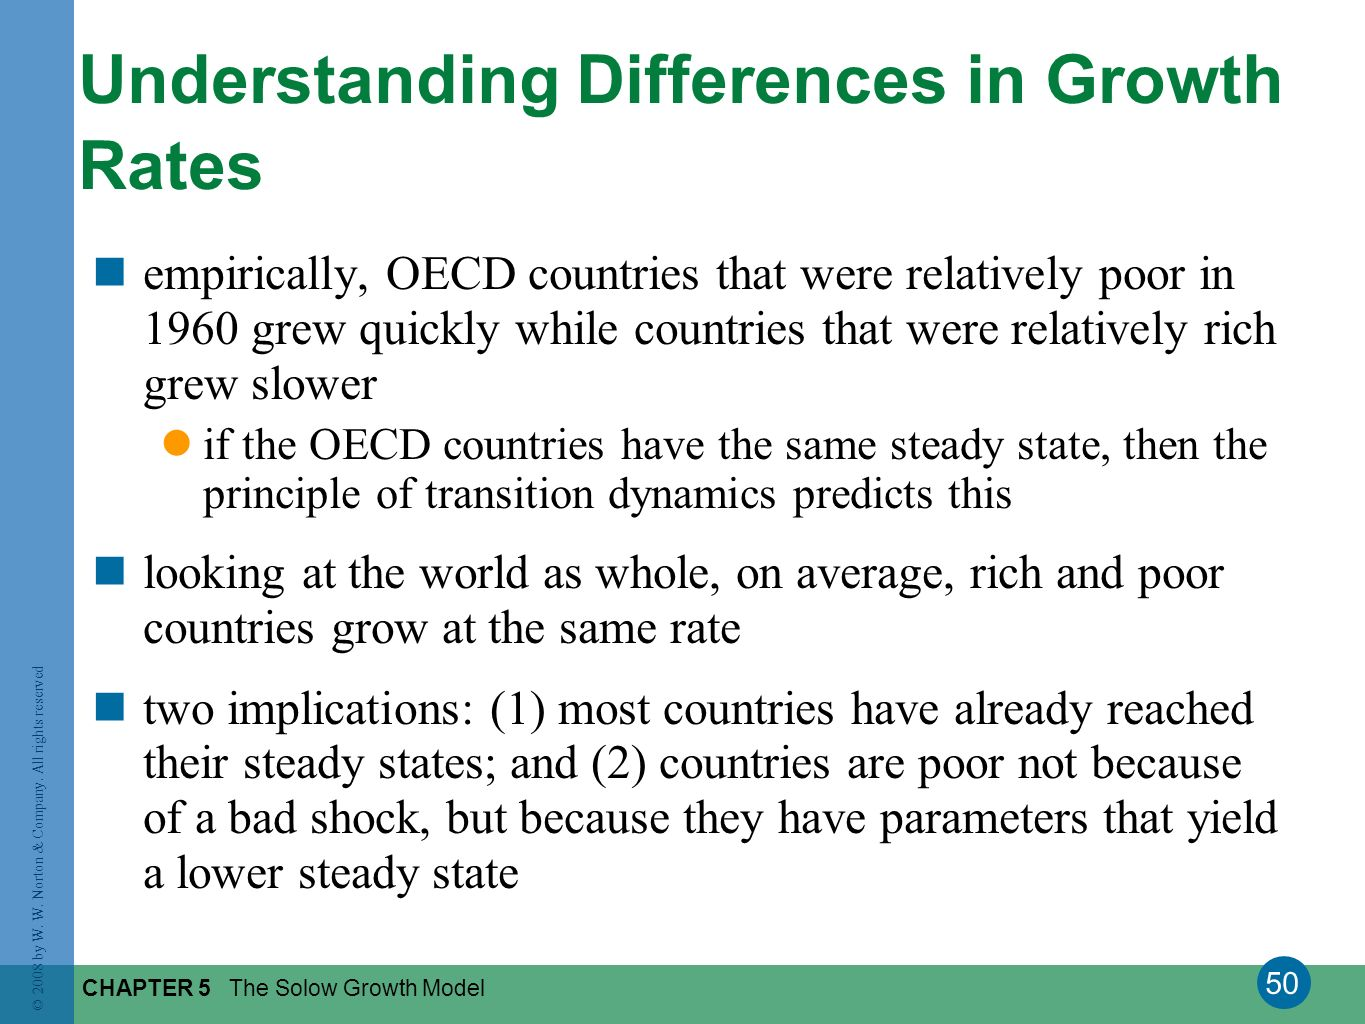 Understanding Differences in Growth Rates